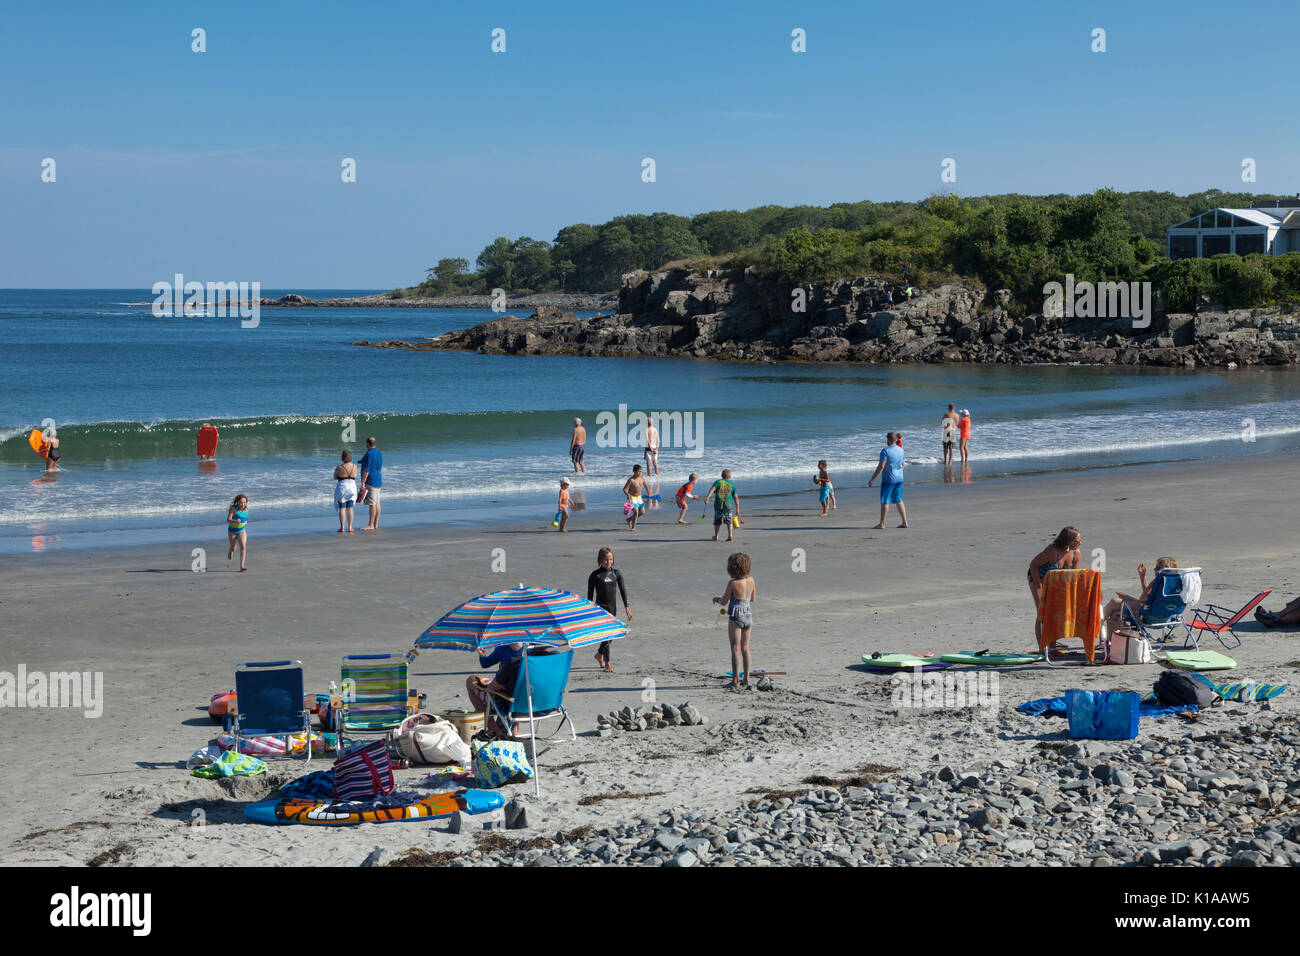 People relaxing at York Harbor Beach, York, Maine - Stock Image